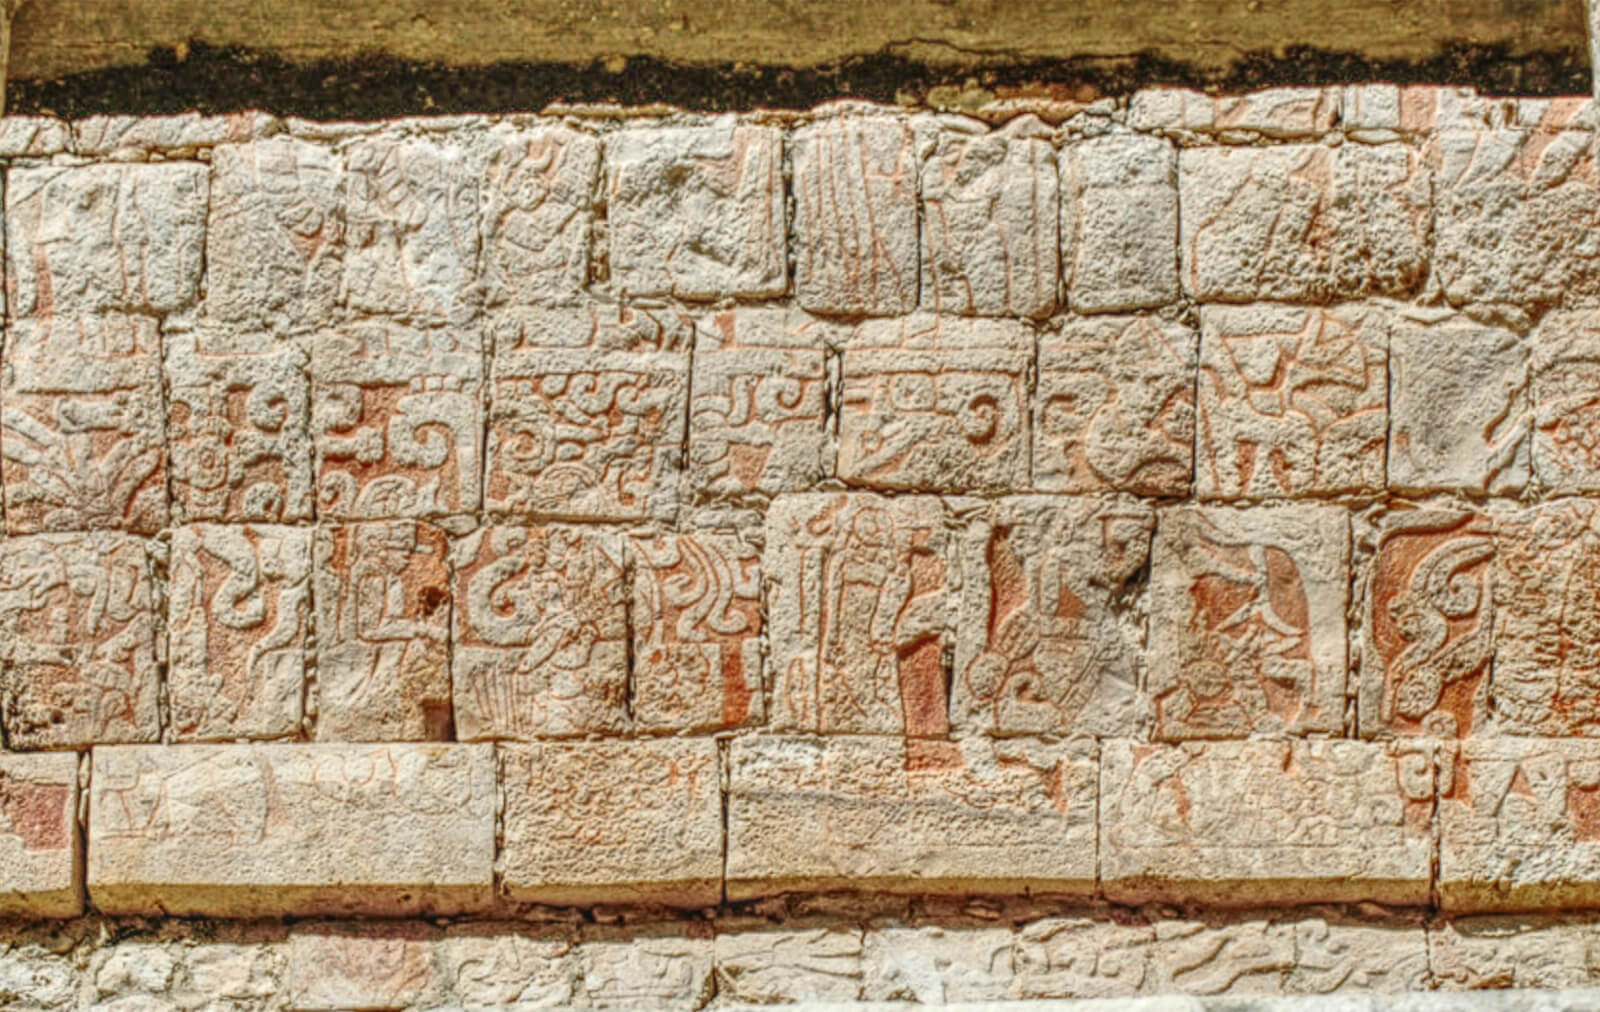 Wall of The Temple of the Bearded Man in Chichen Itza